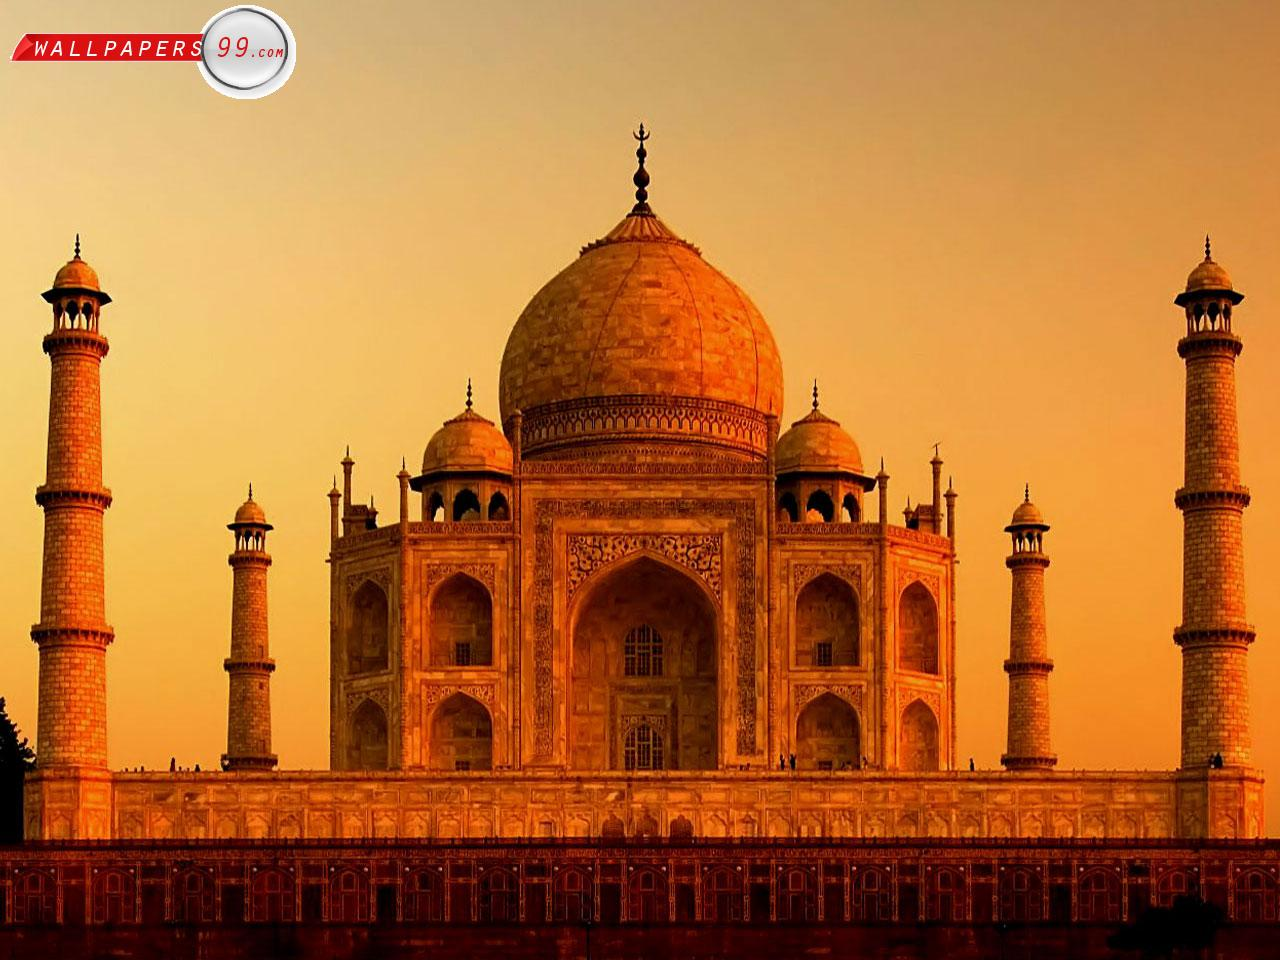 HD WALLPAPER GALLERY: Taj Mahal India Wallpaper